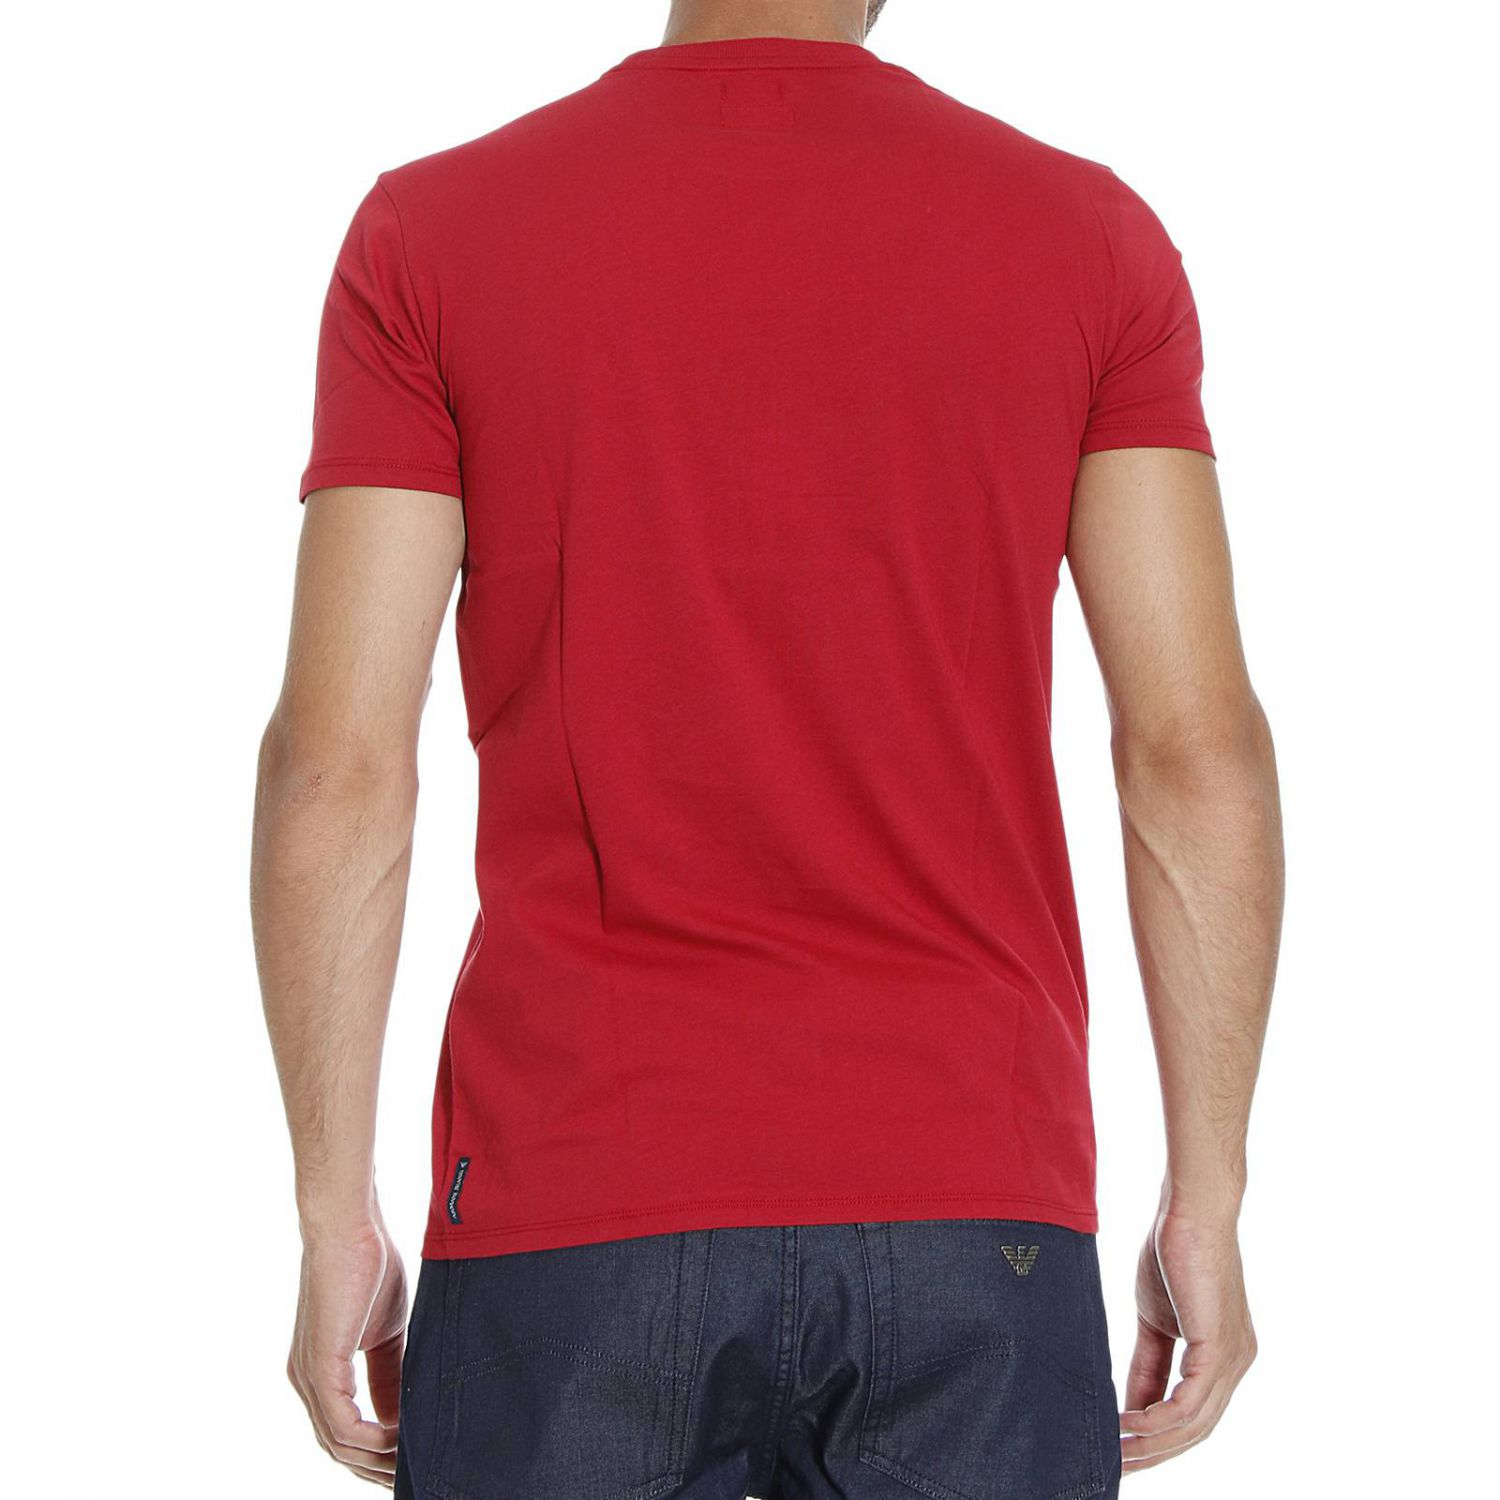 Giorgio armani t shirt short sleeve print logo in red for for Print logo on shirt